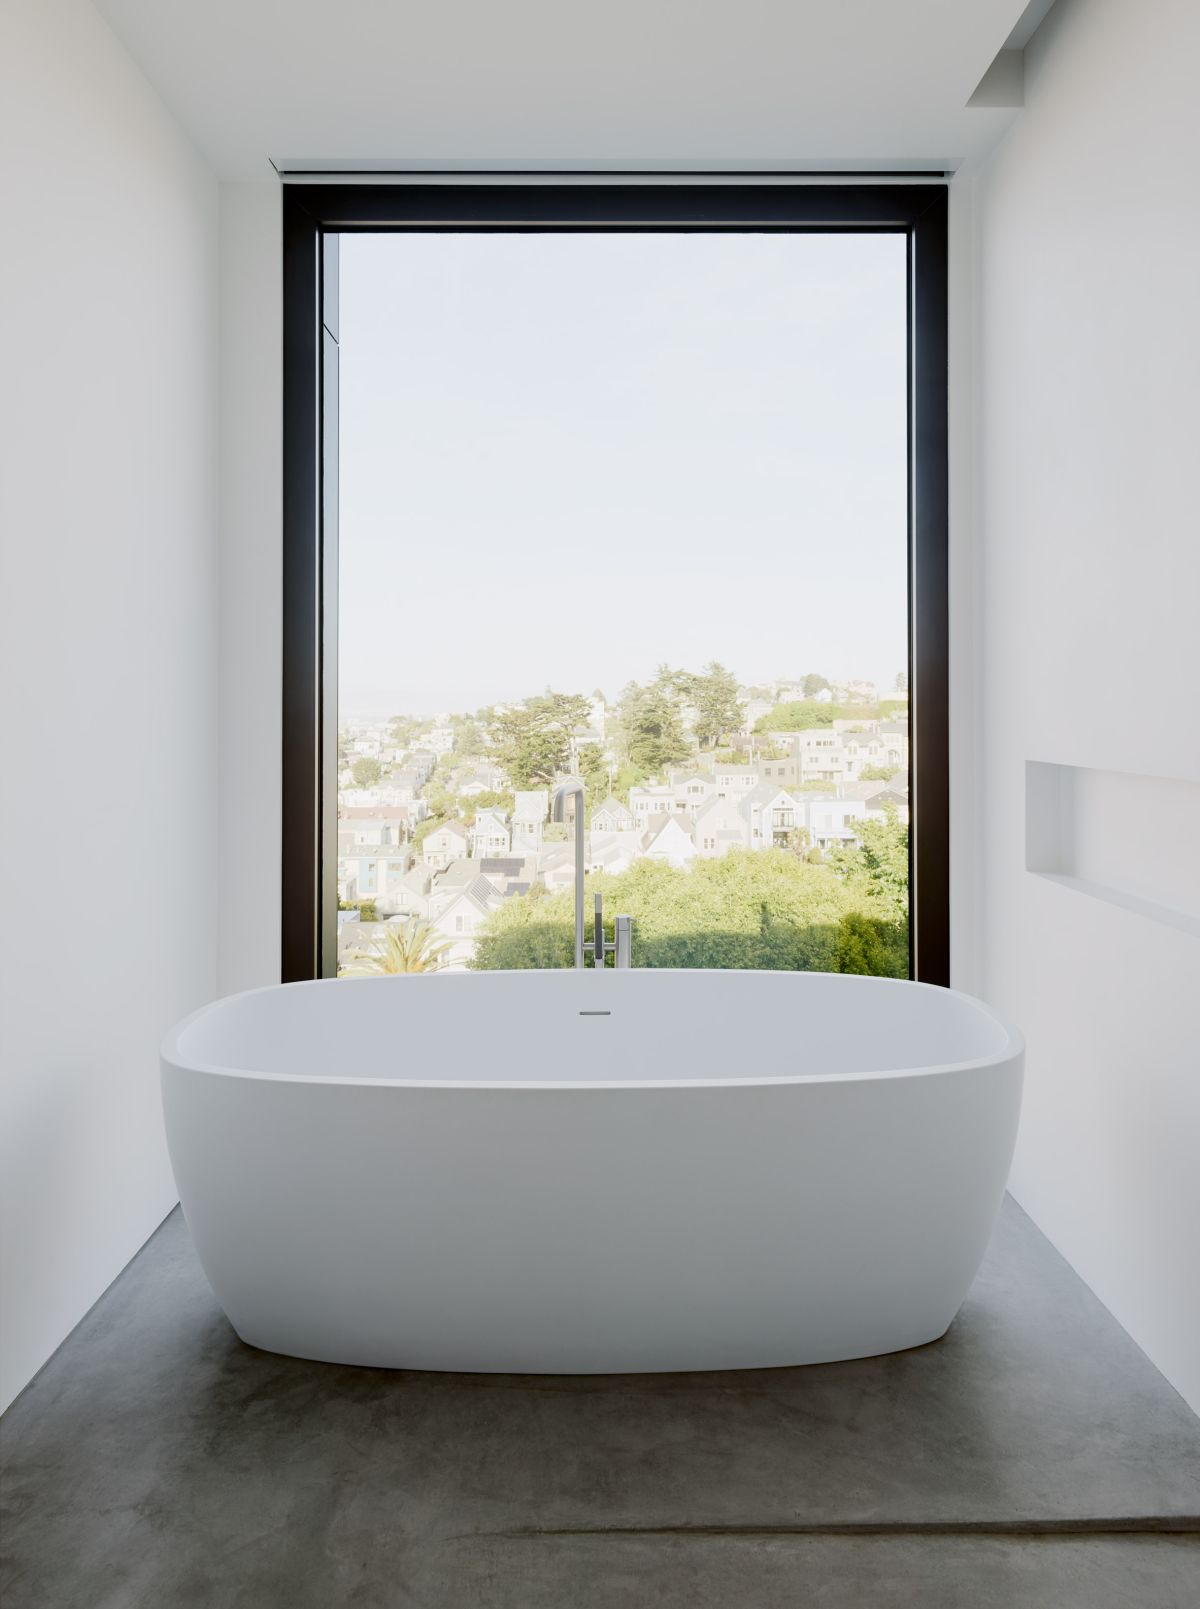 The gorgeous views can also be enjoyed from the bathroom which has this lovely bathtub nook with its own wall niche and large window